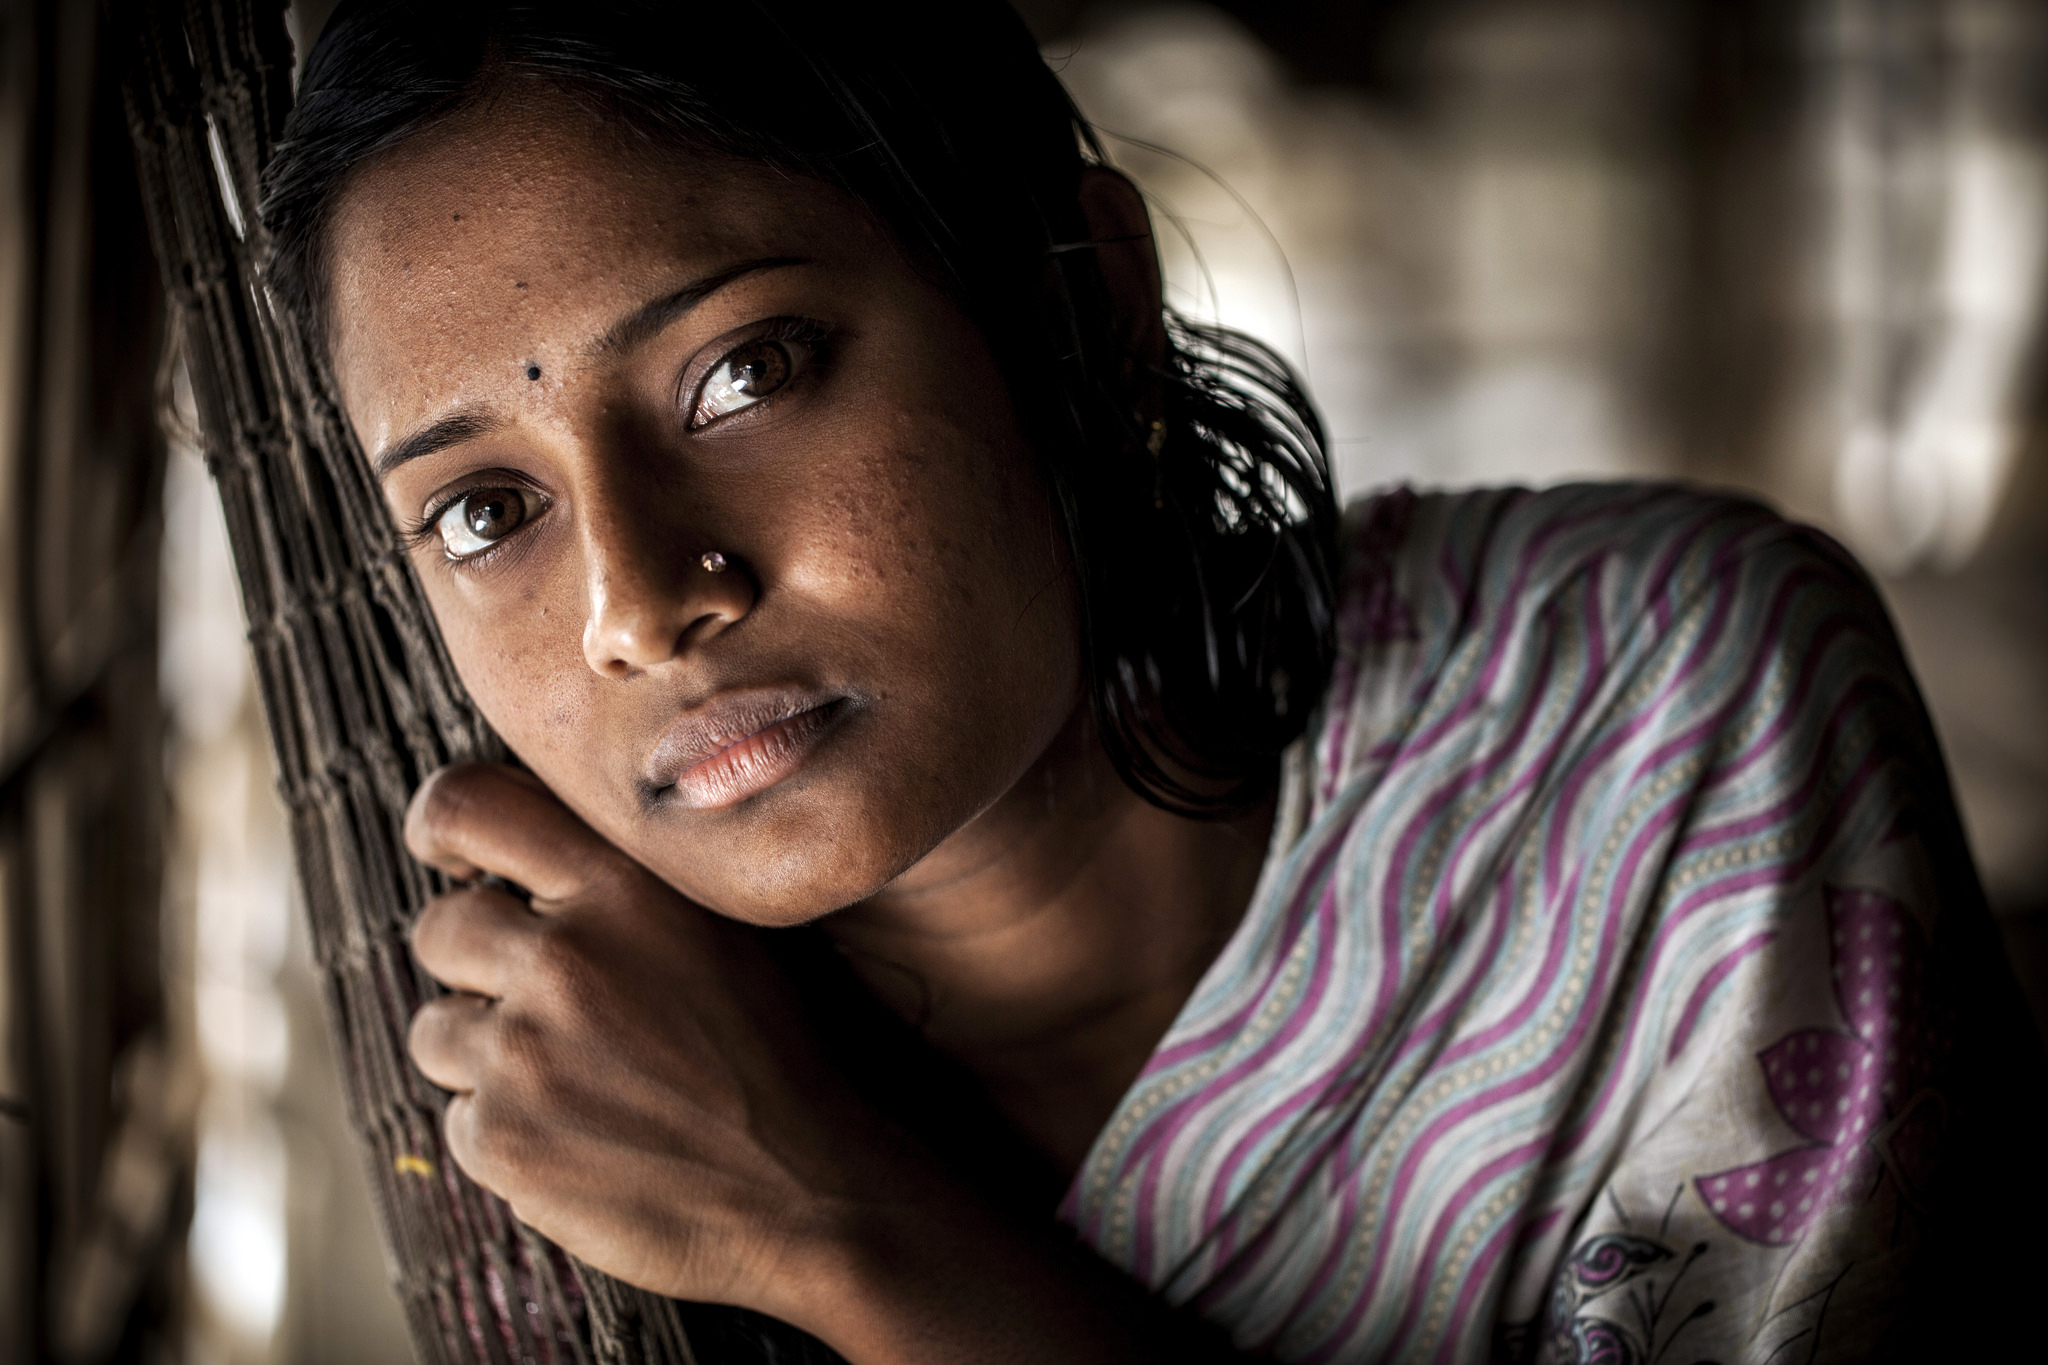 Many young women in Bangladesh struggle to provide for themselves and their families in large cities like Dakha. For some sex work can seem like an attractive way to make extra money -Photo courtesy of  WorldFish .